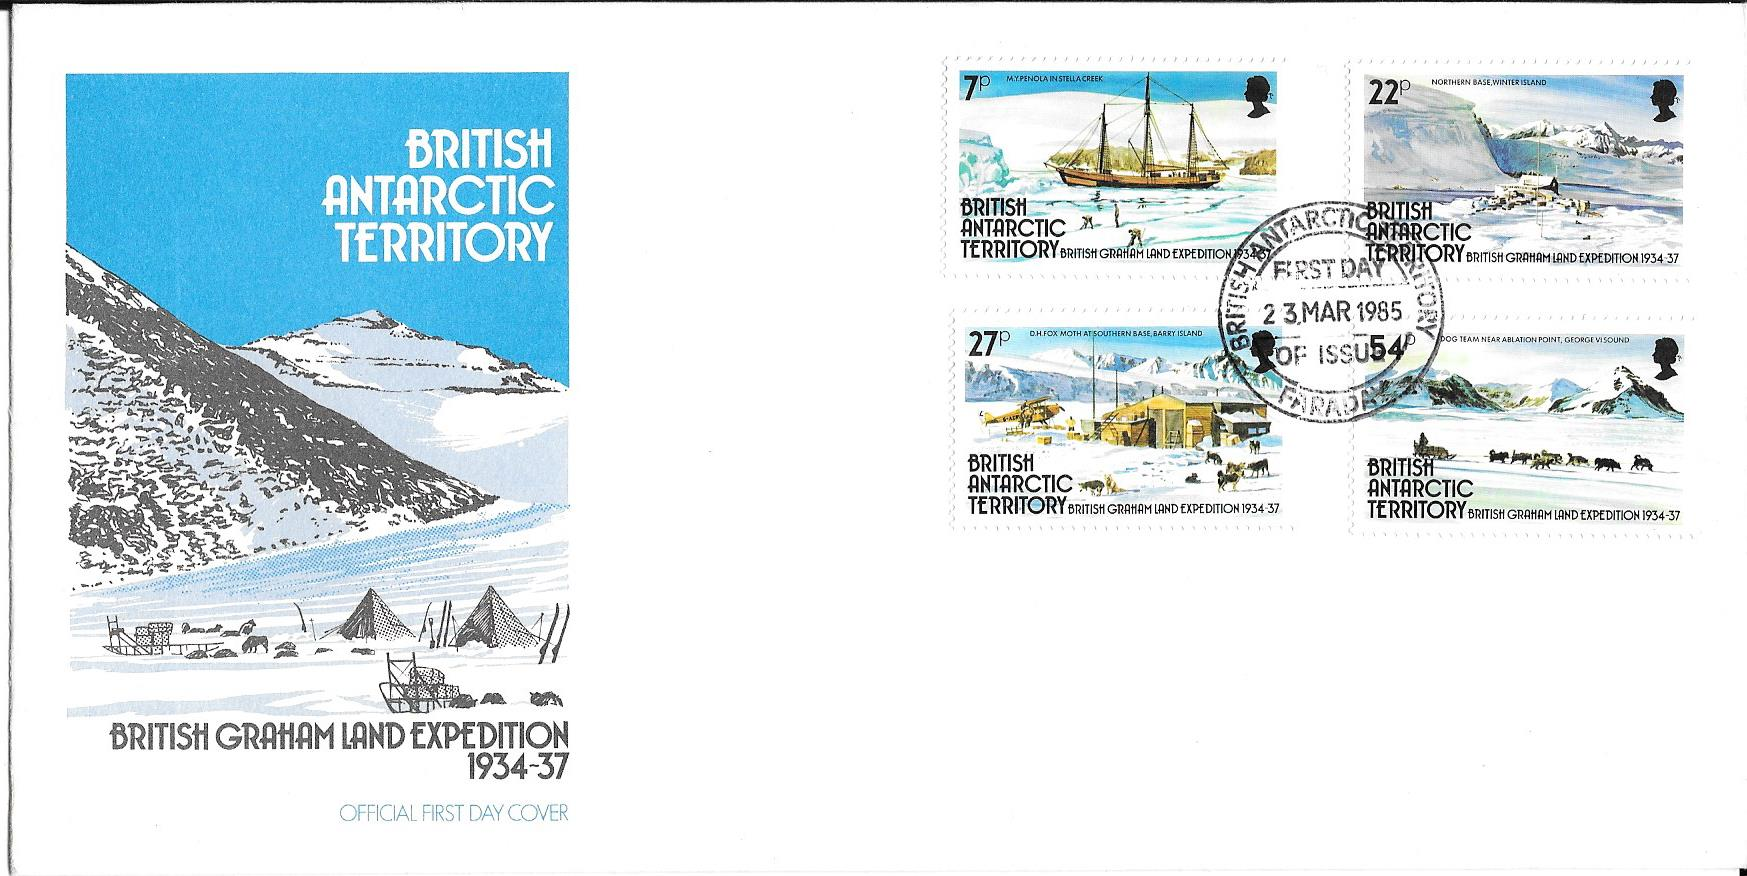 British Grahamland Expedition 1934 - 1937 Cover